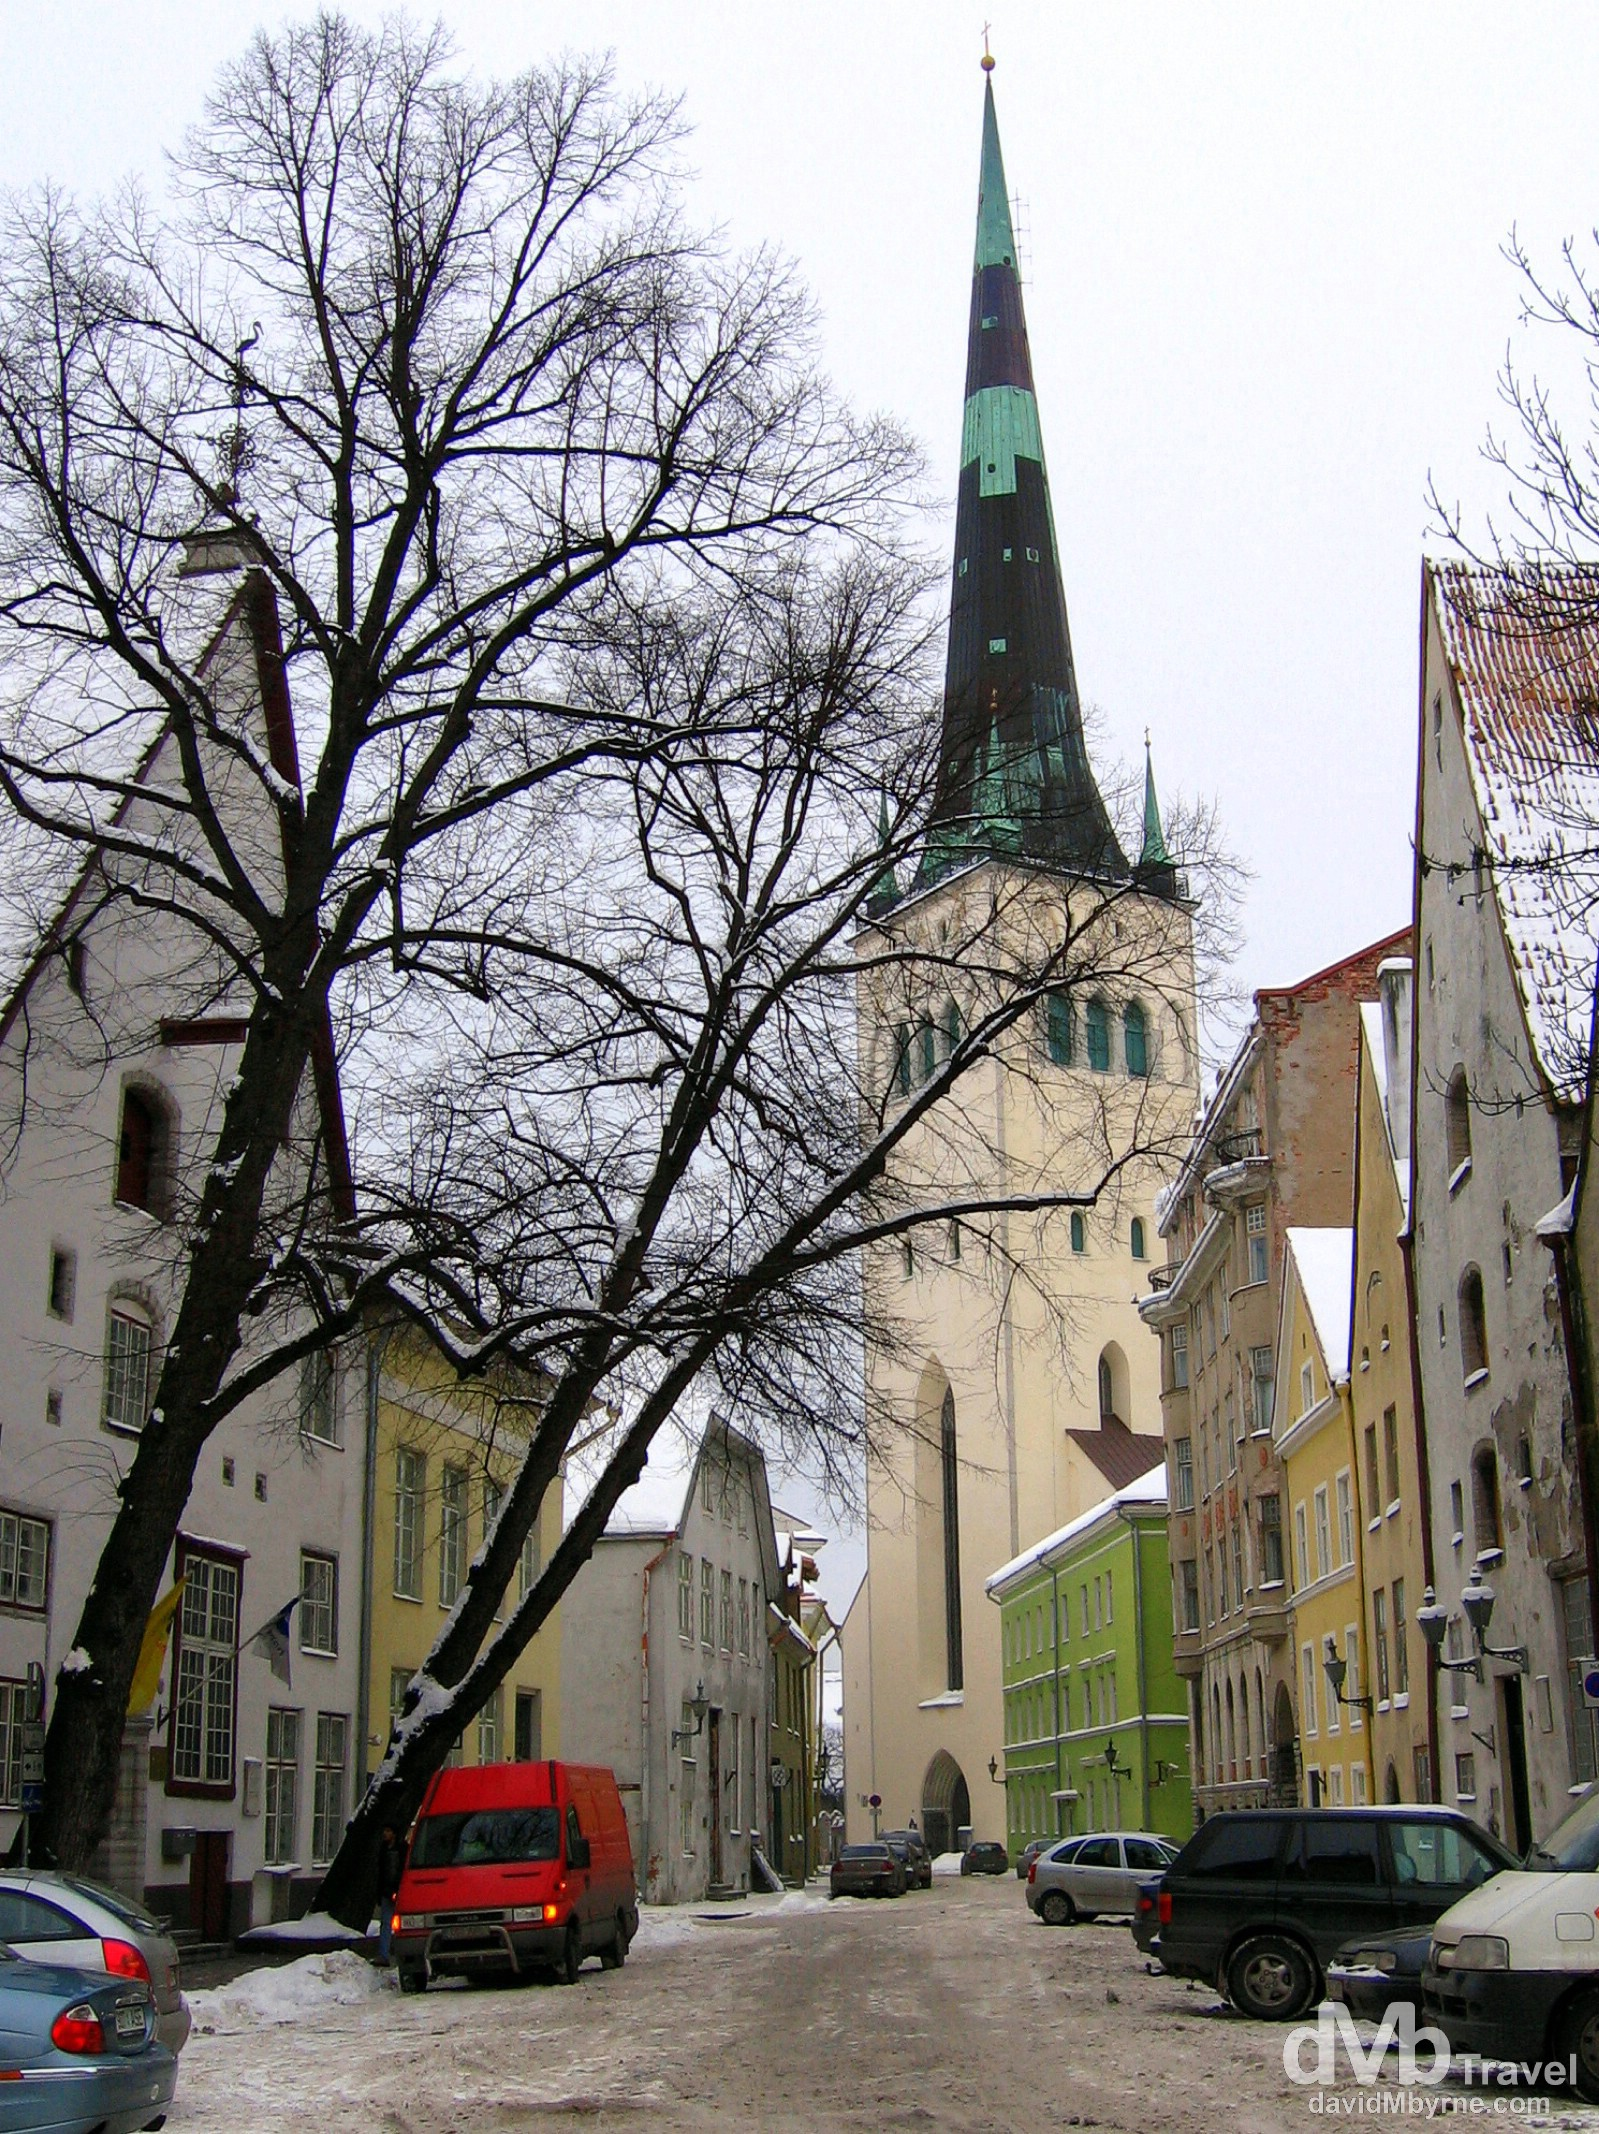 The Oleviste Church towering over a  Pikk tanav in the Old Town of Tallinn, Estonia. March 2, 2006.